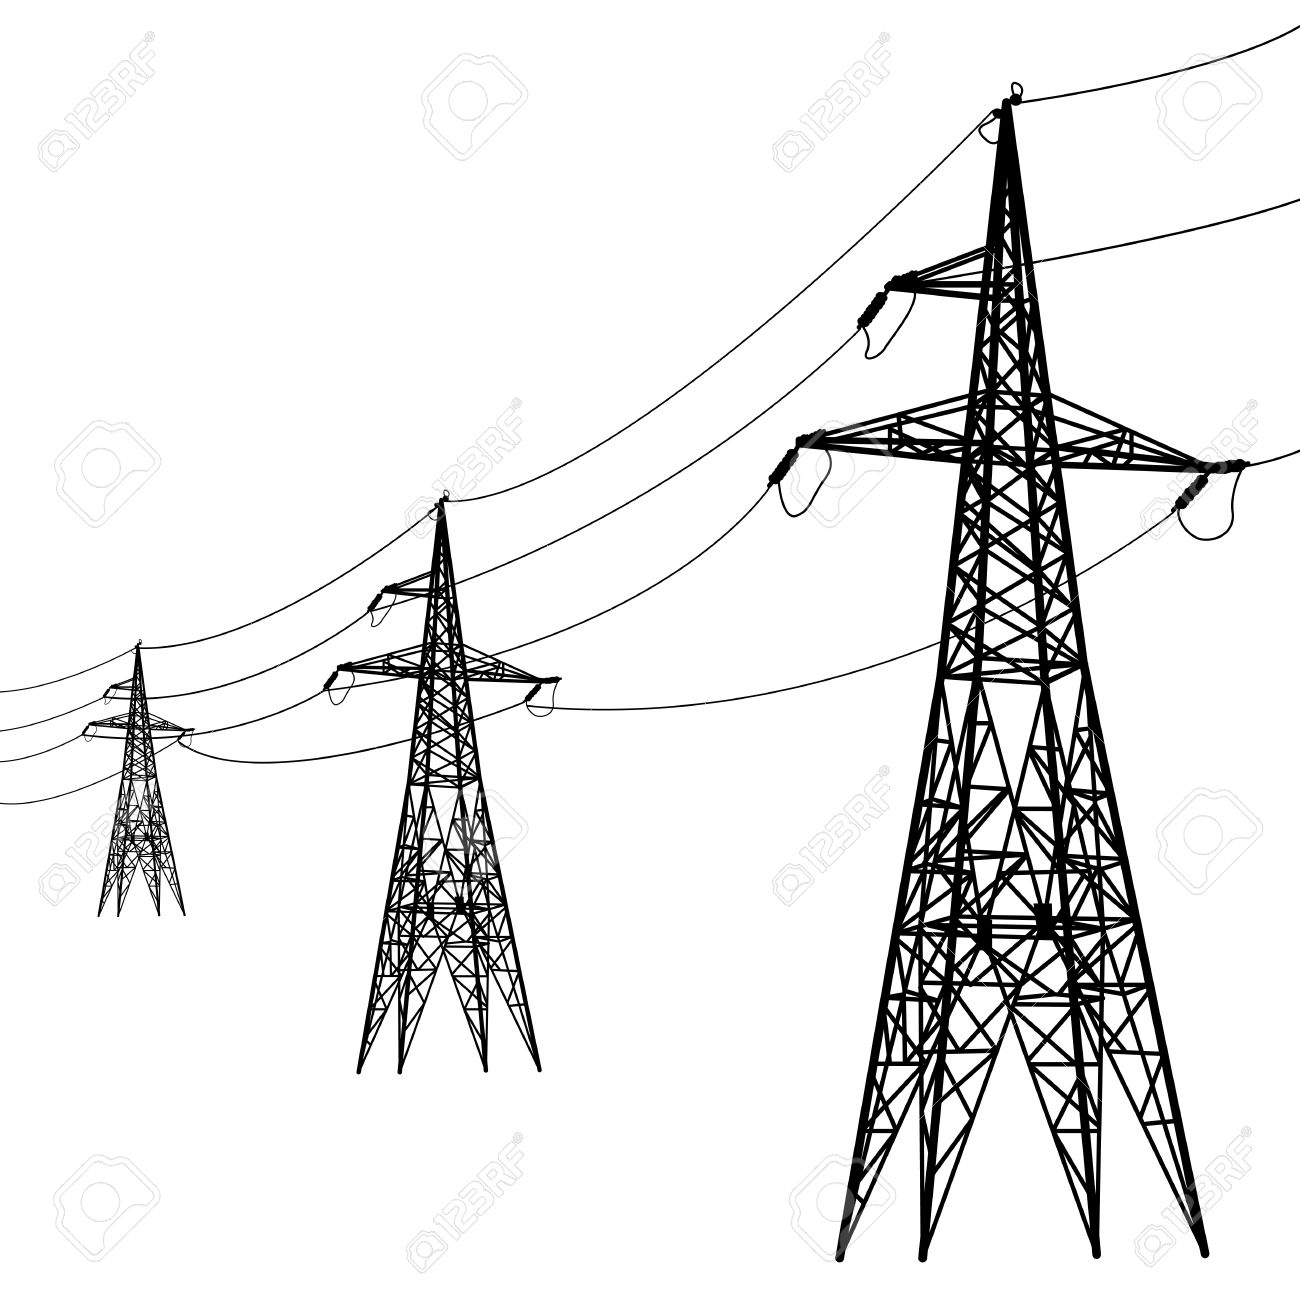 Pictures About Electricity